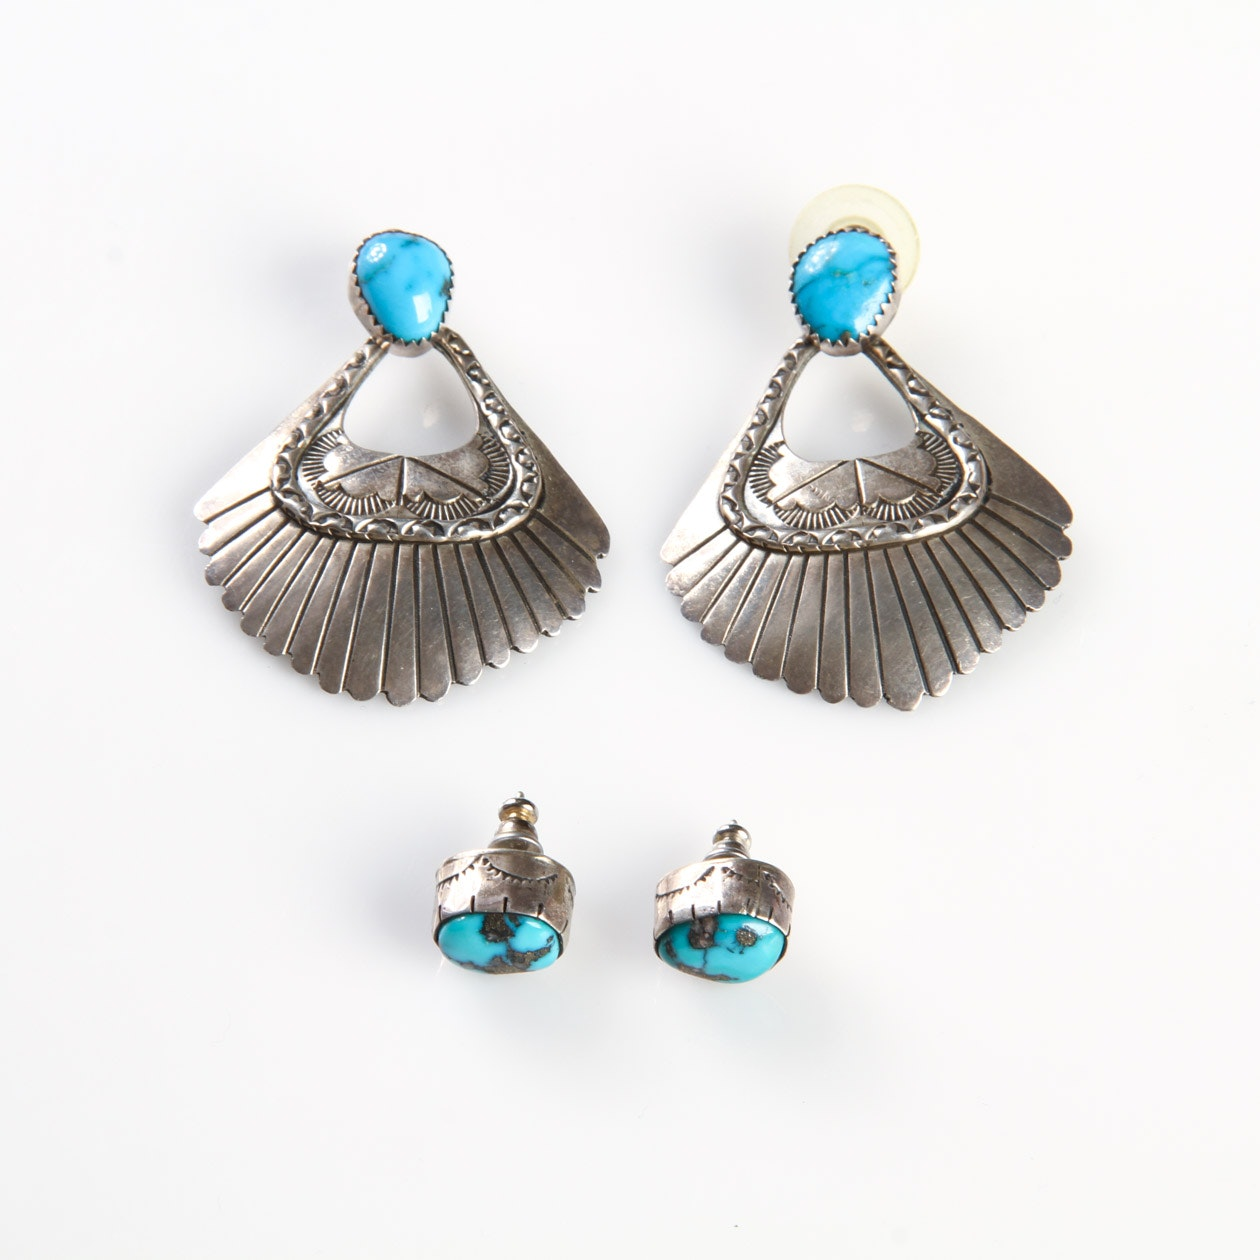 Navajo Inspired Turquoise and Sterling Silver Earrings